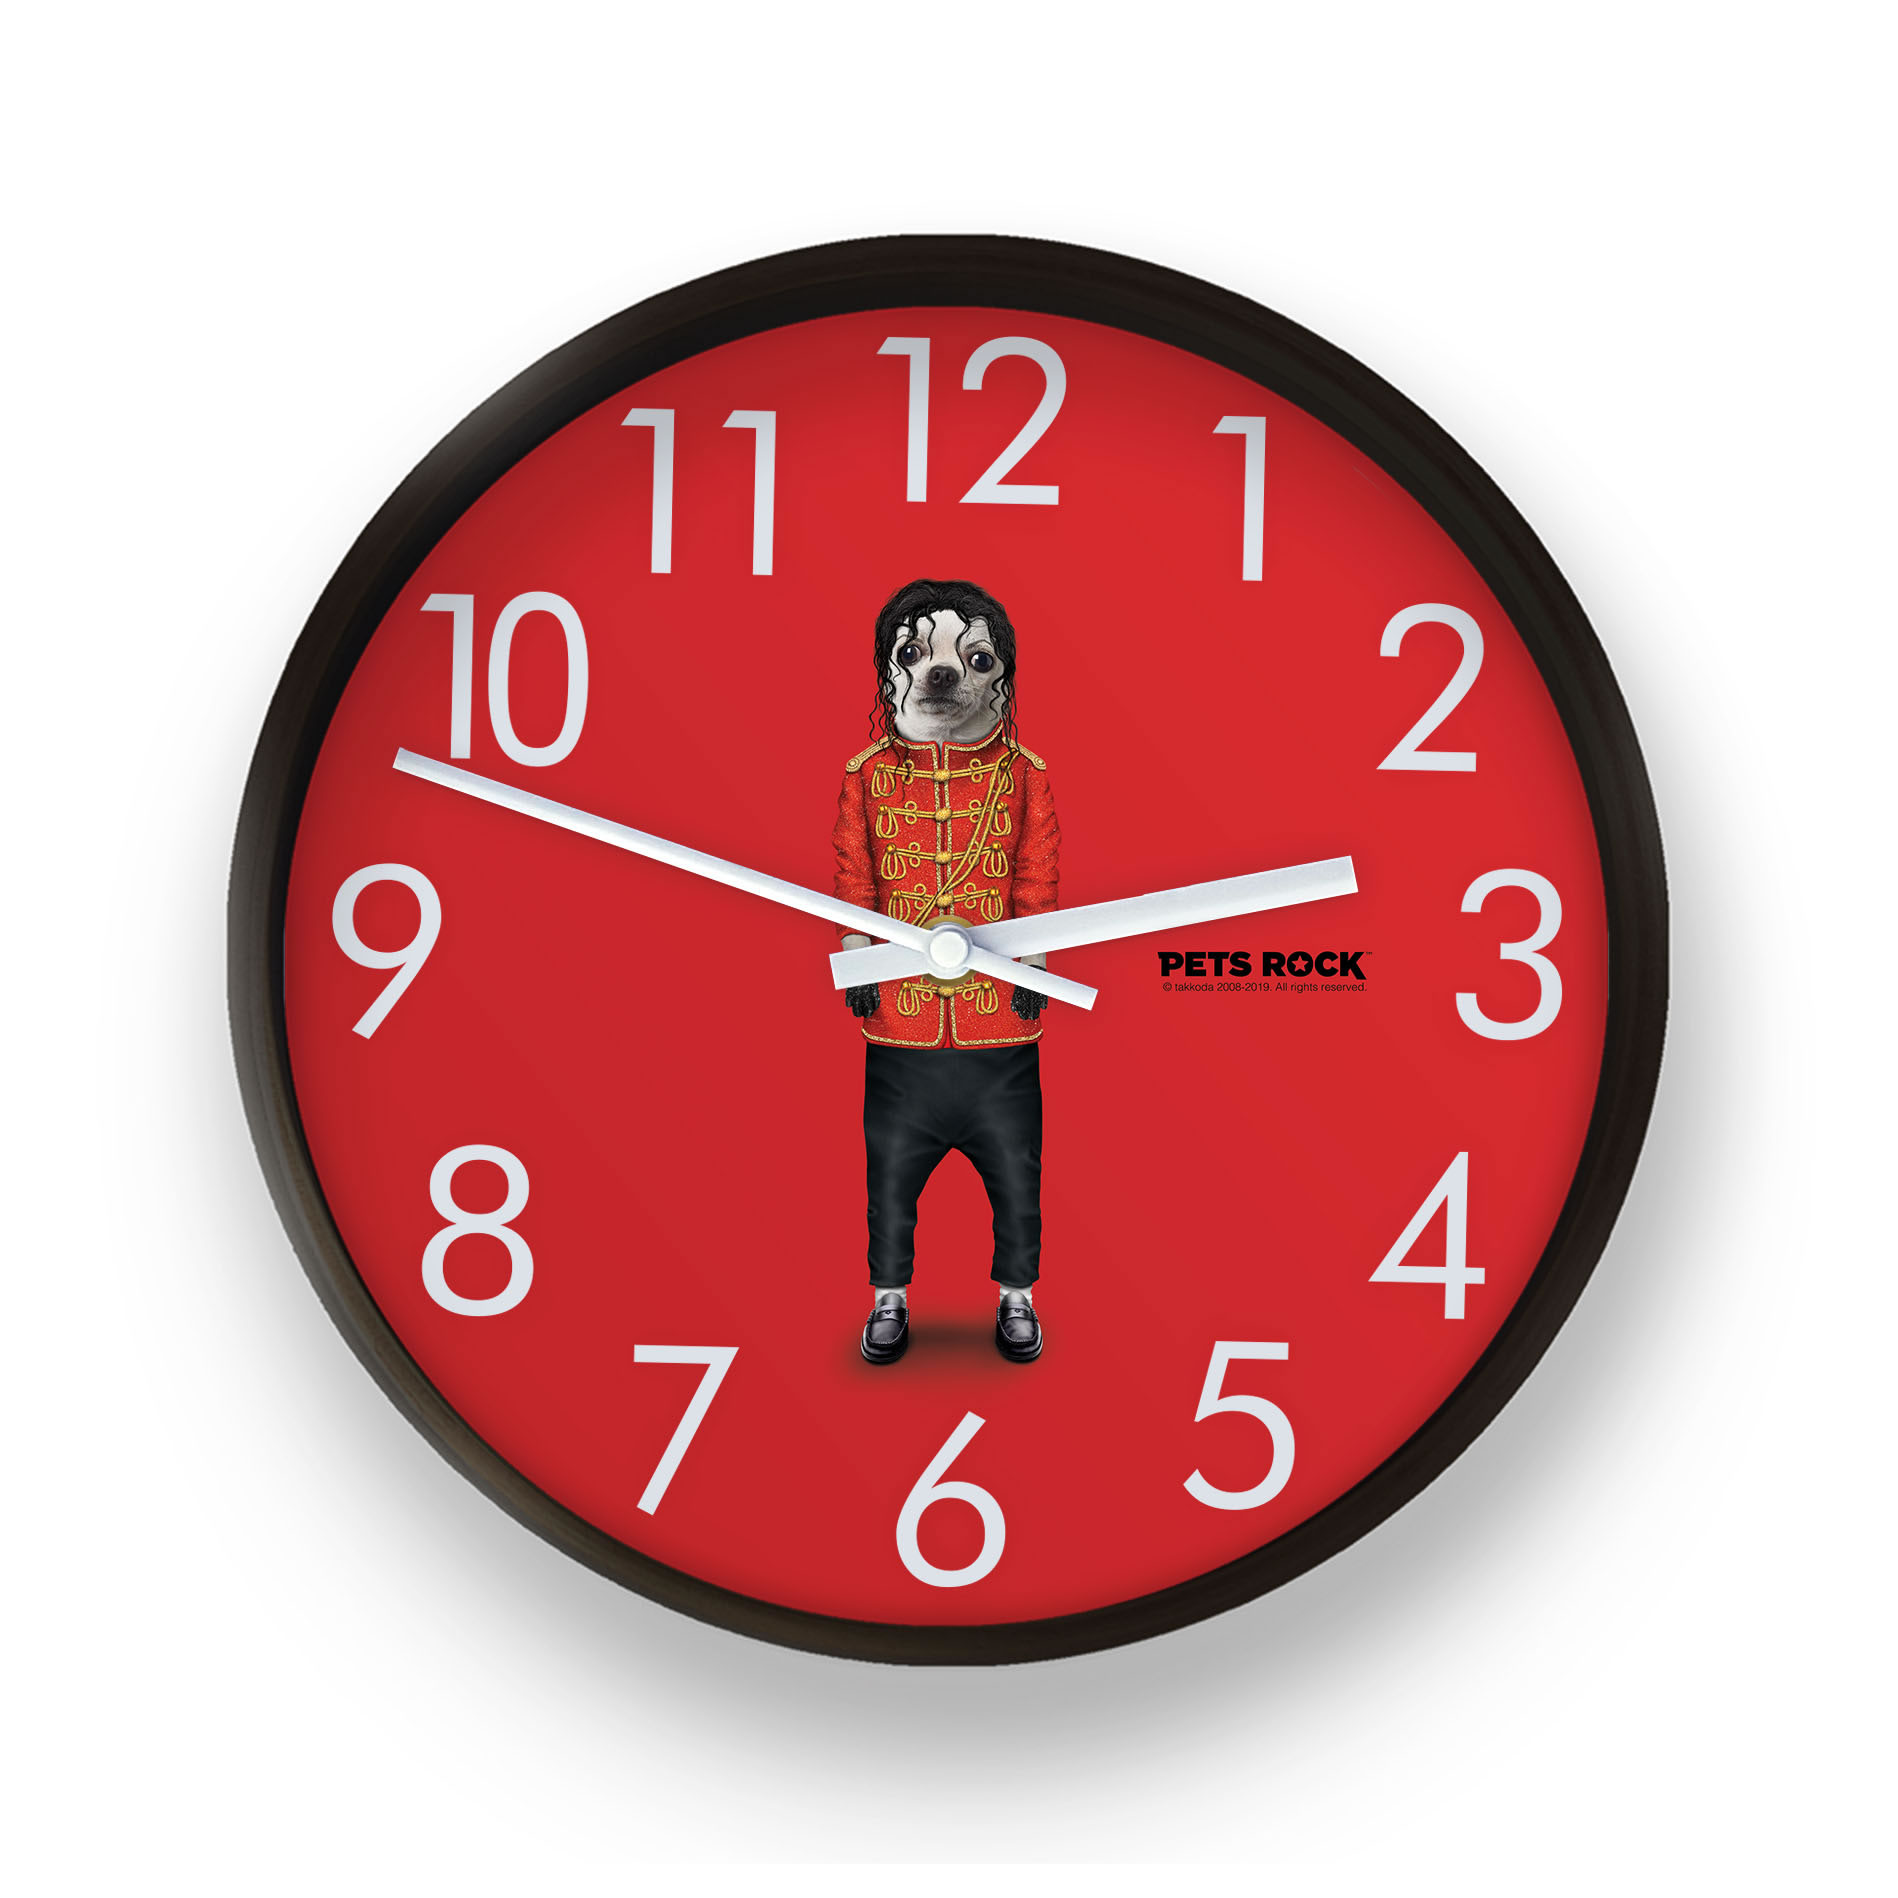 Pop Pets Rock Wall Clock